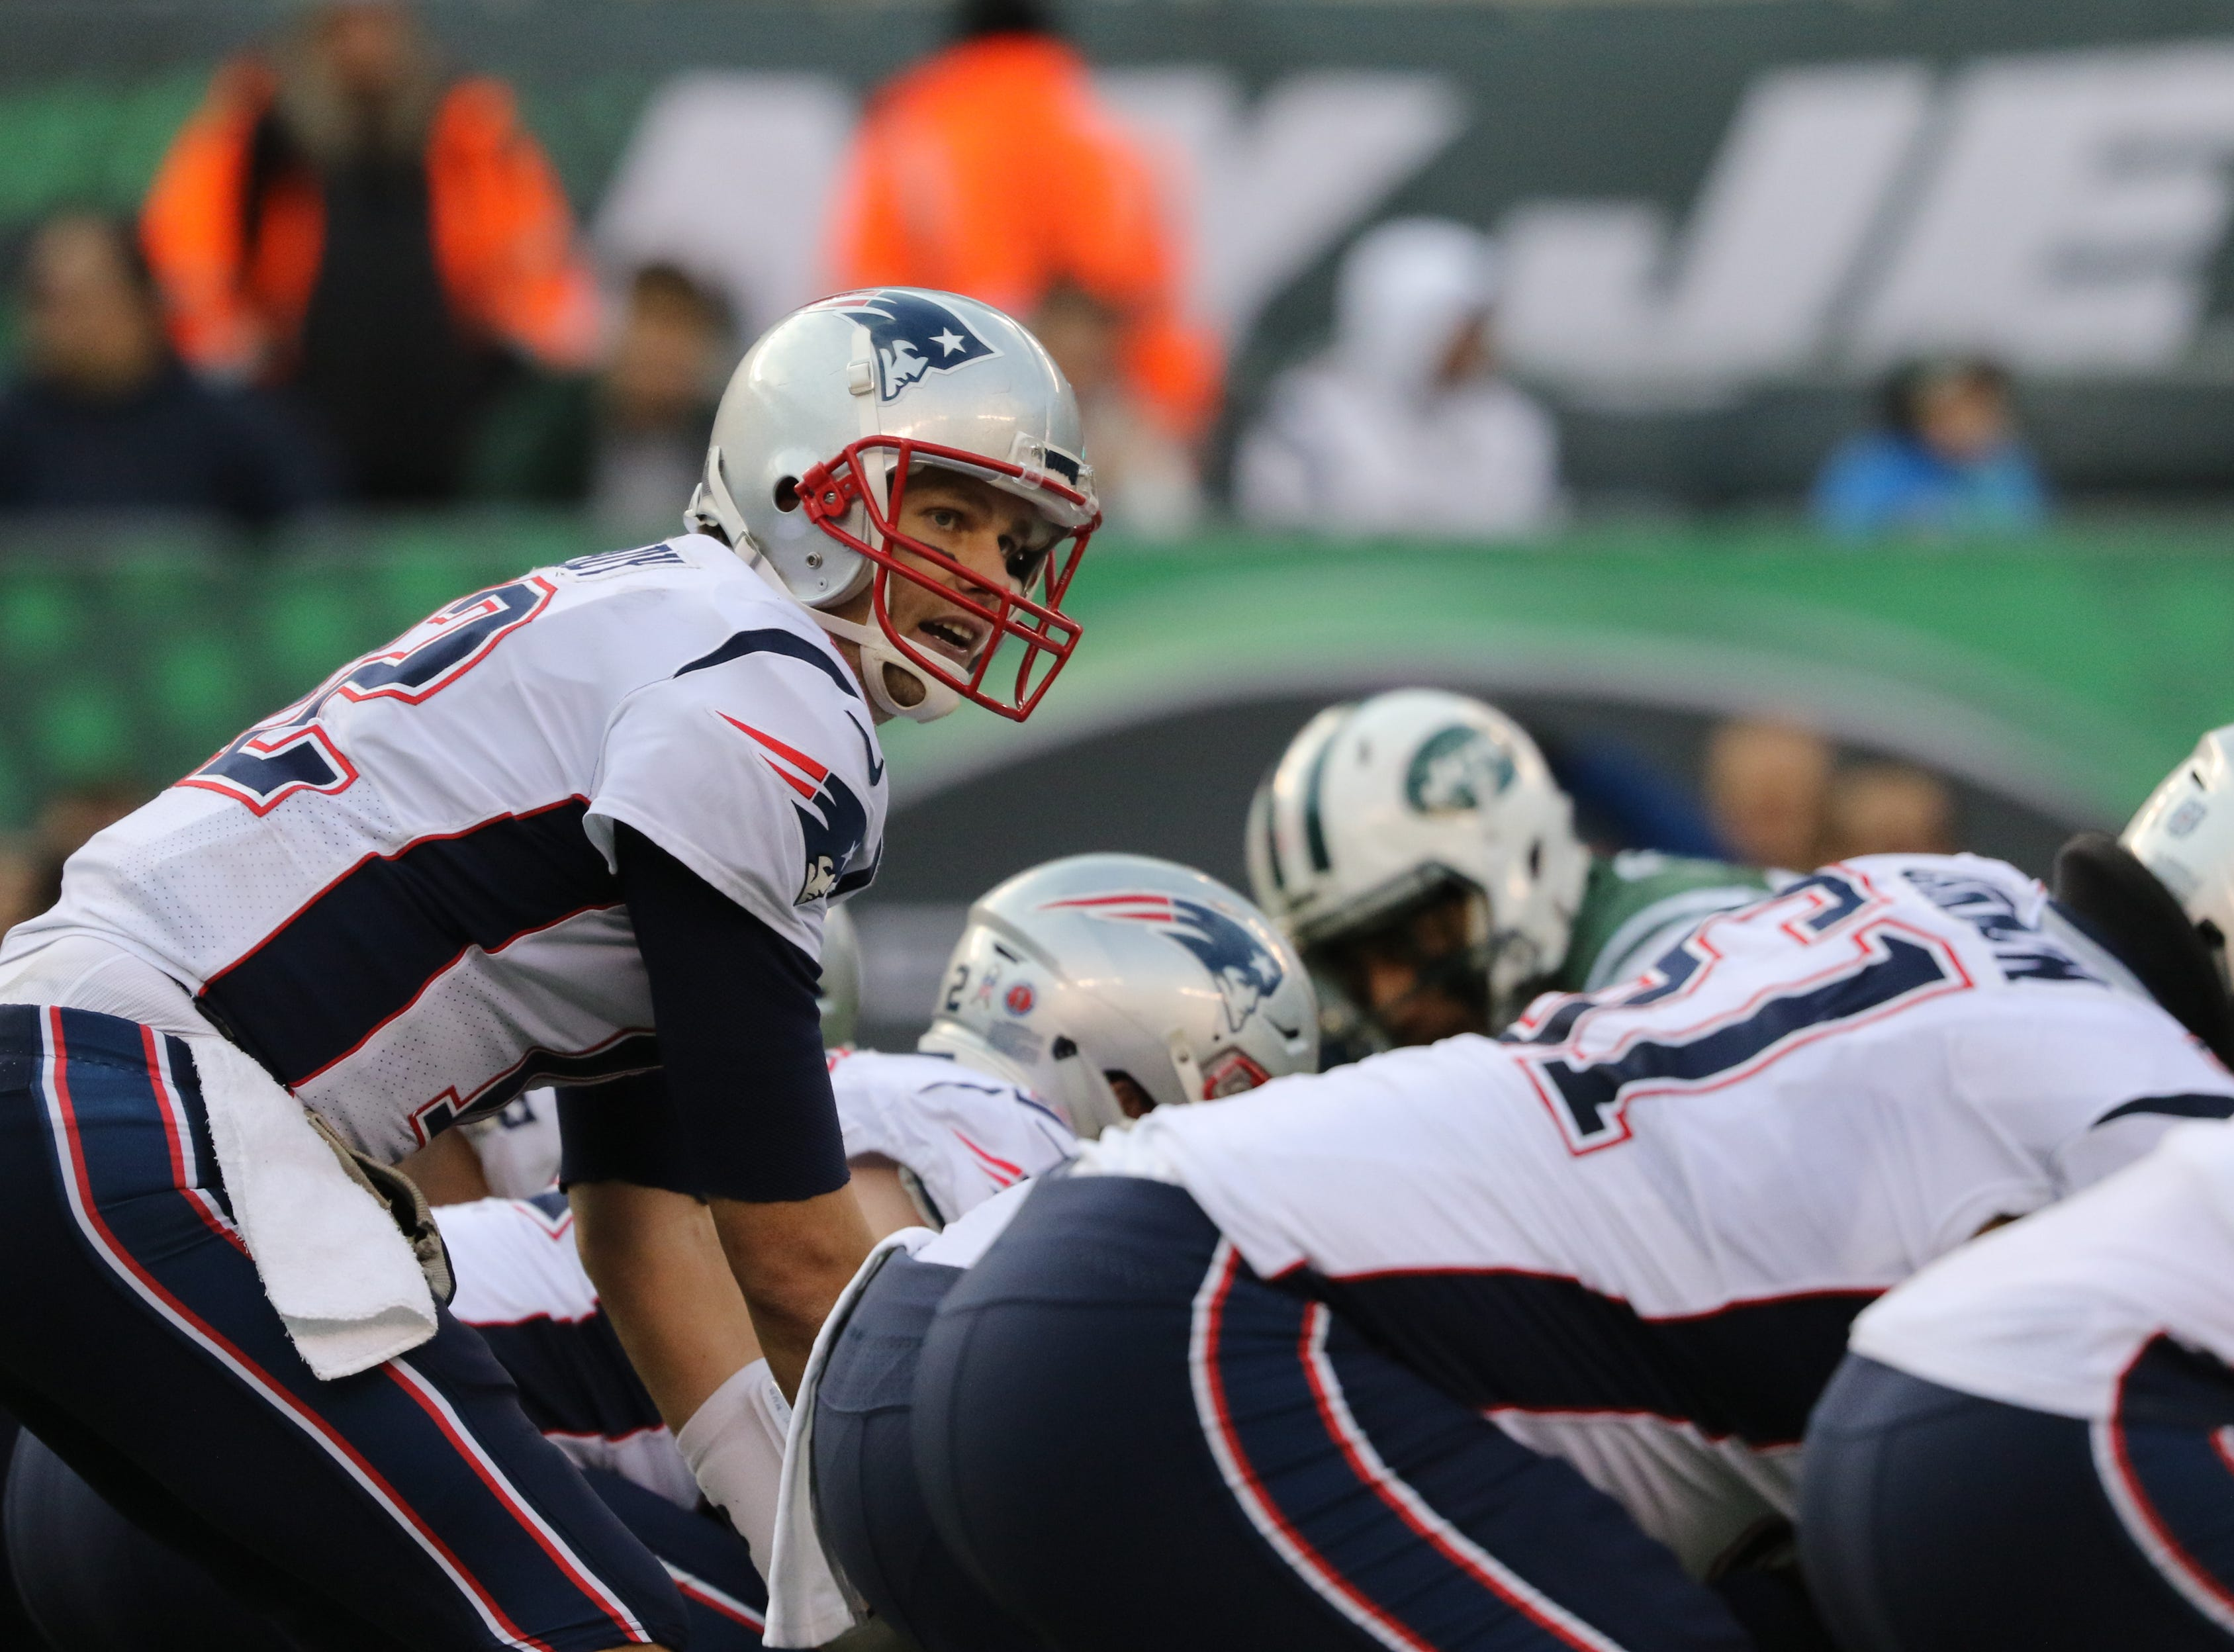 Tom Brady, of the Patriots is shown during the second half. Sunday, November 25, 2018